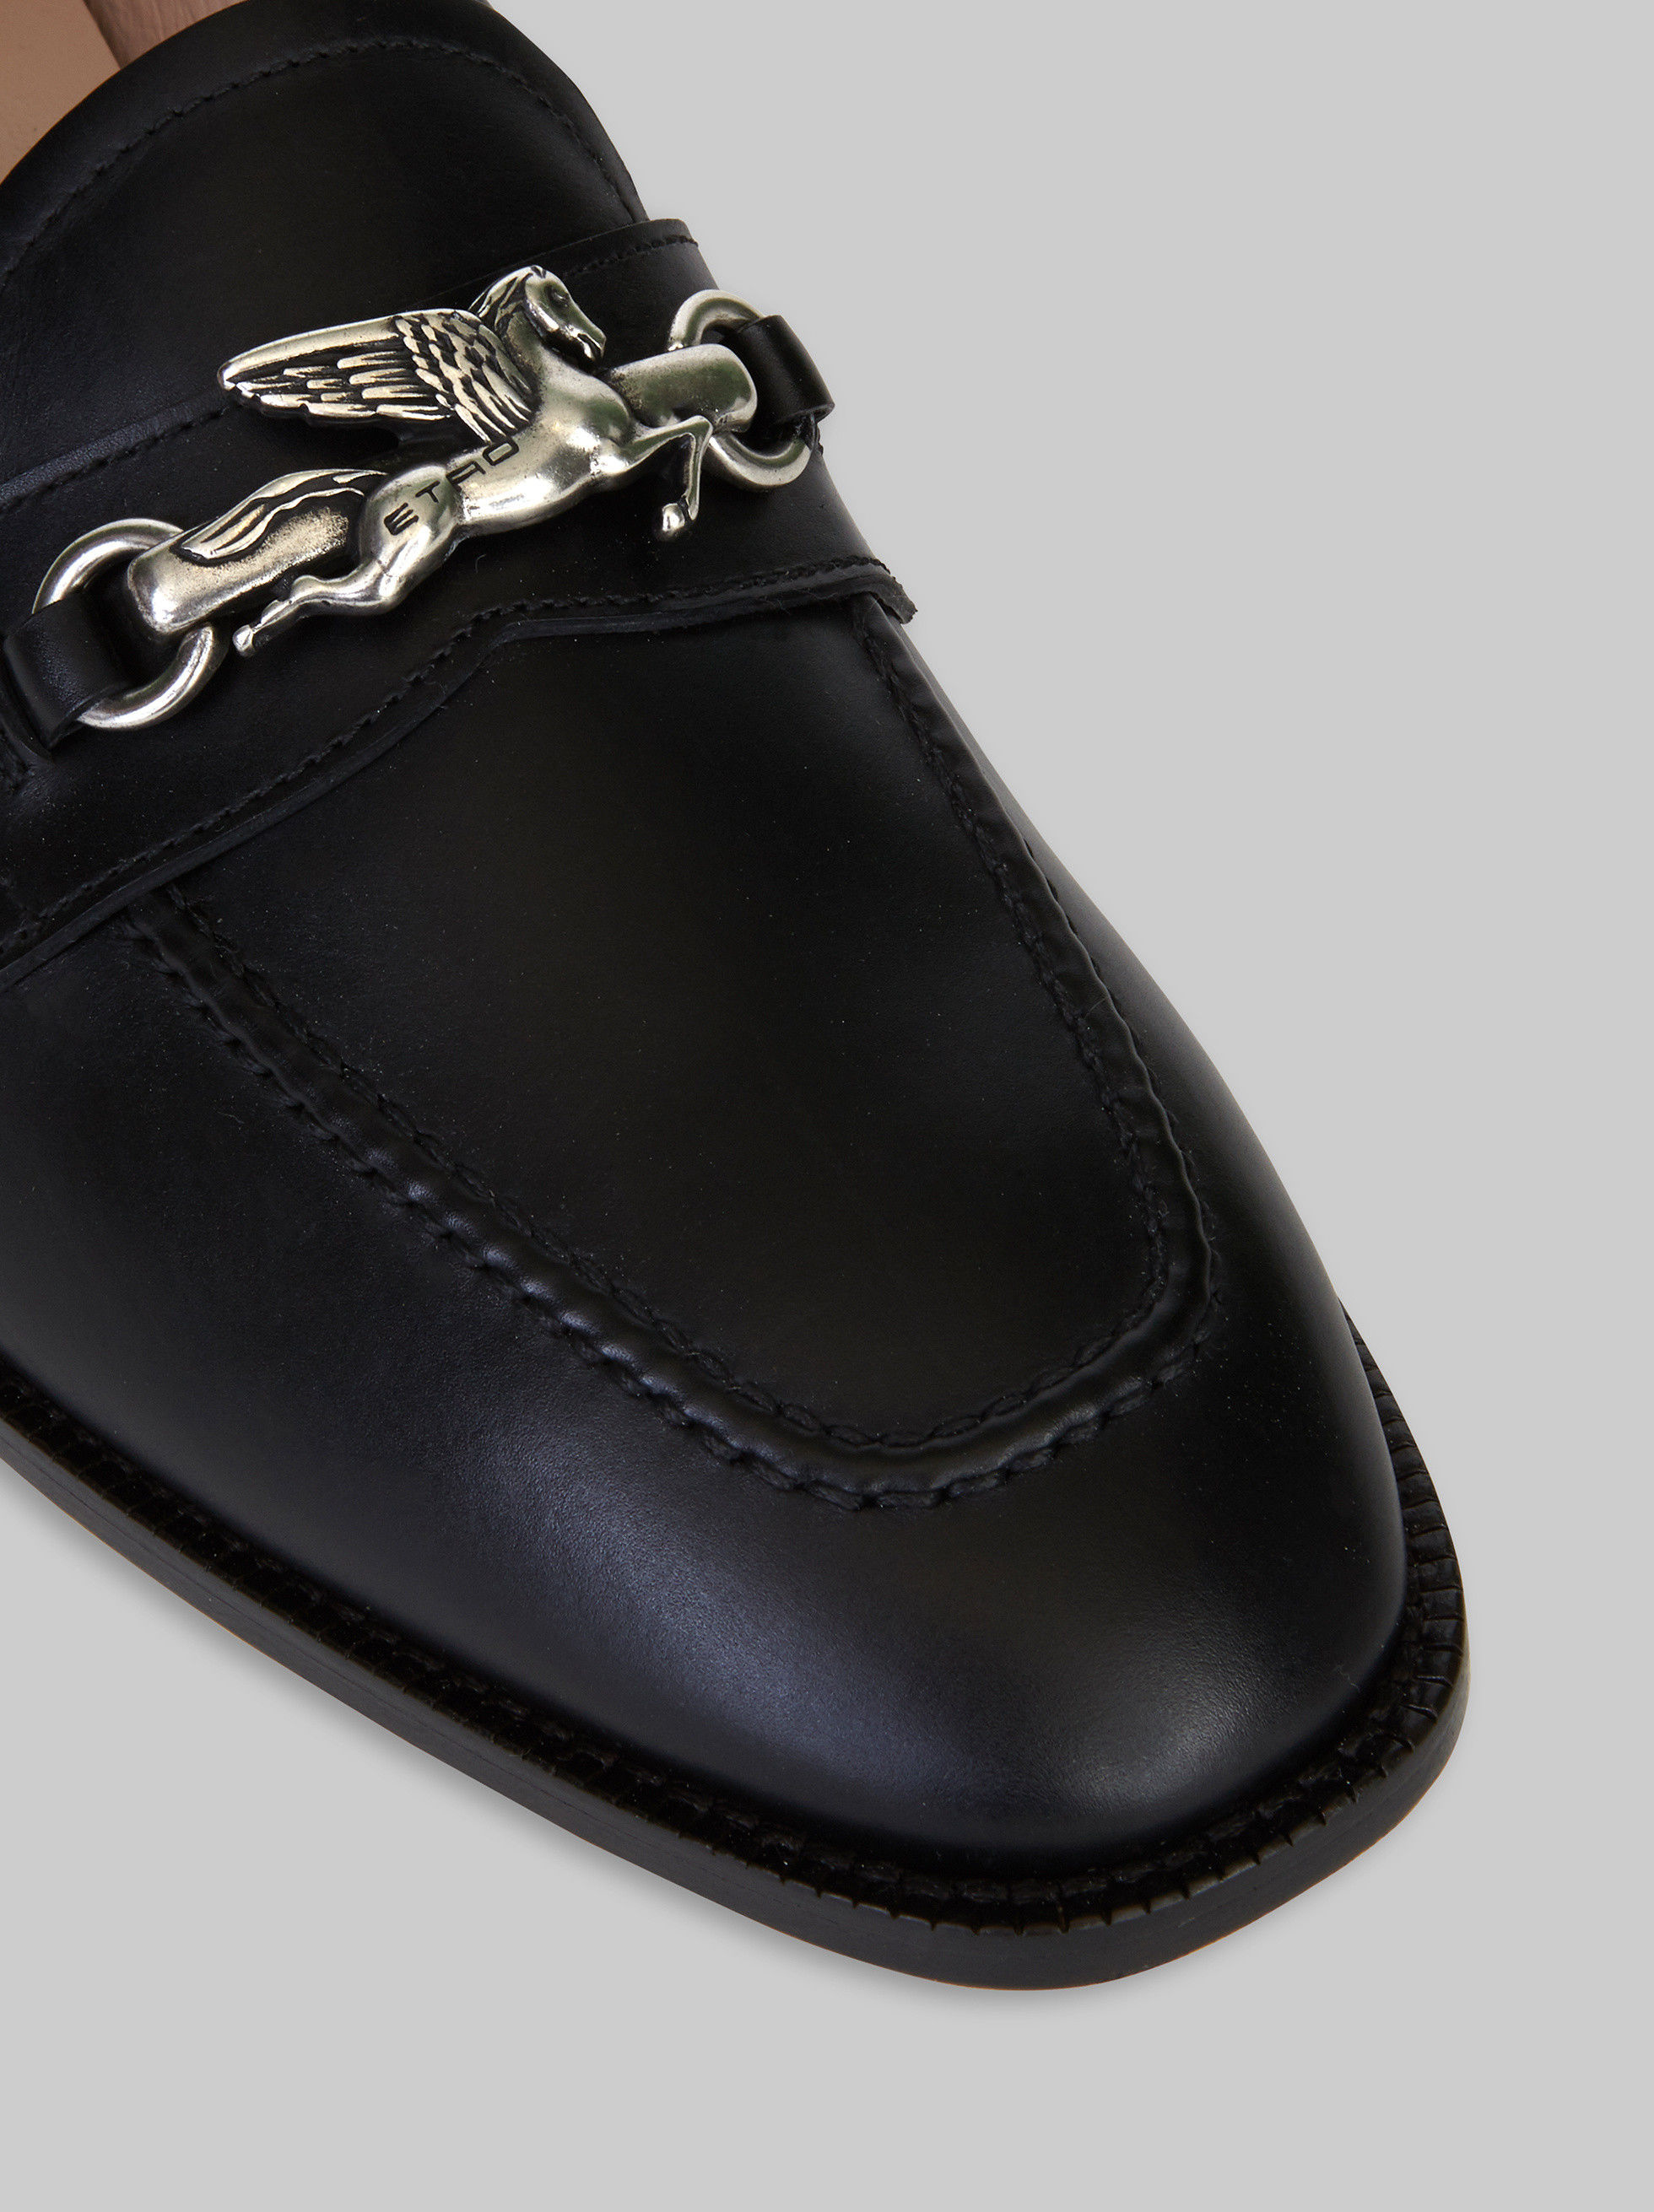 LEATHER MOCCASINS WITH PEGASO